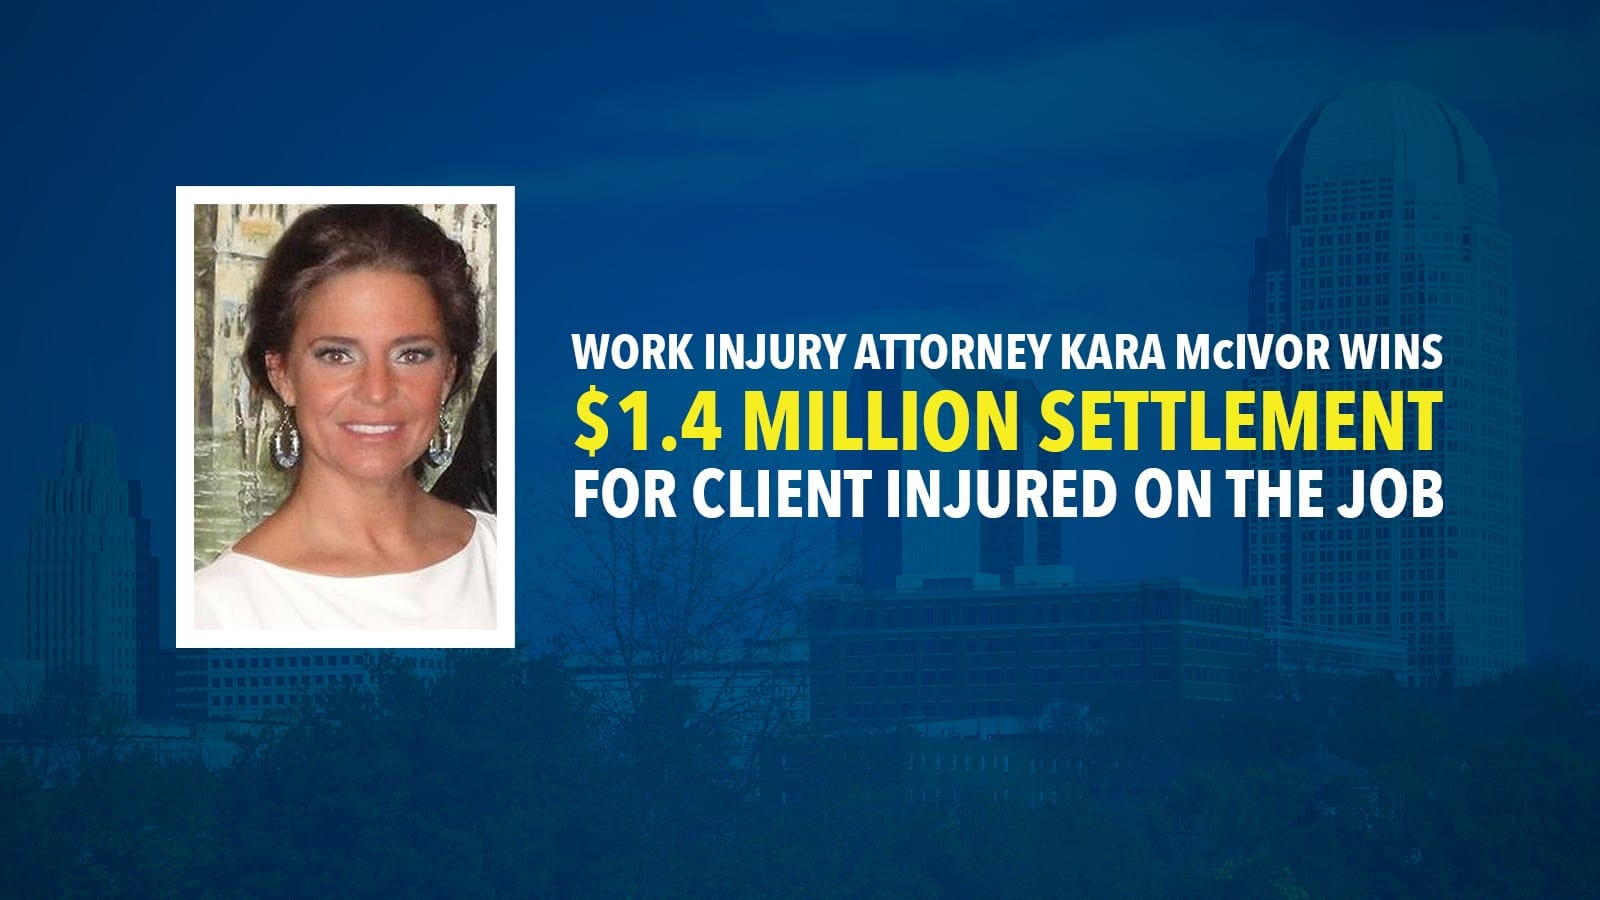 Kara McIvor Work Injury Settlement Photo